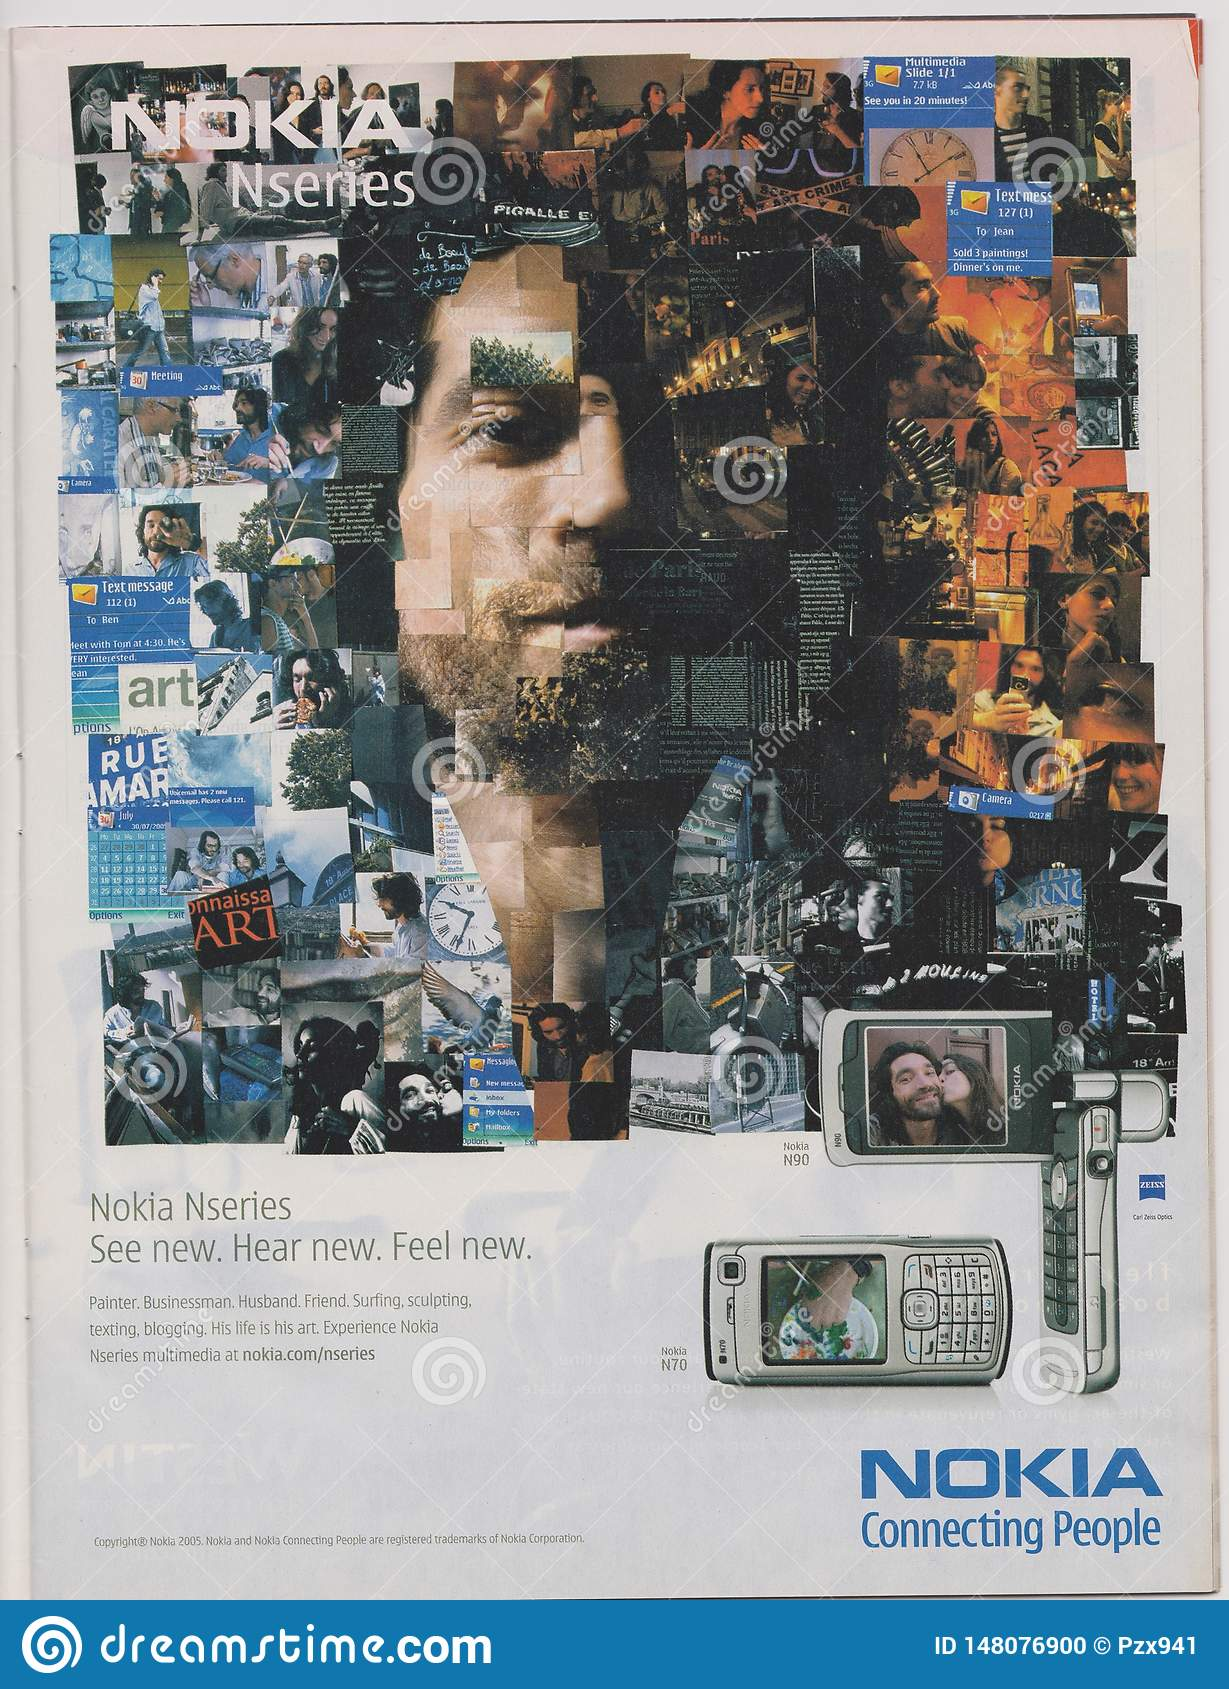 Poster advertising Nokia Nseries N70 phone in magazine from 2005, NOKIA Connecting People slogan,  See, Hear, Feel New, slogan